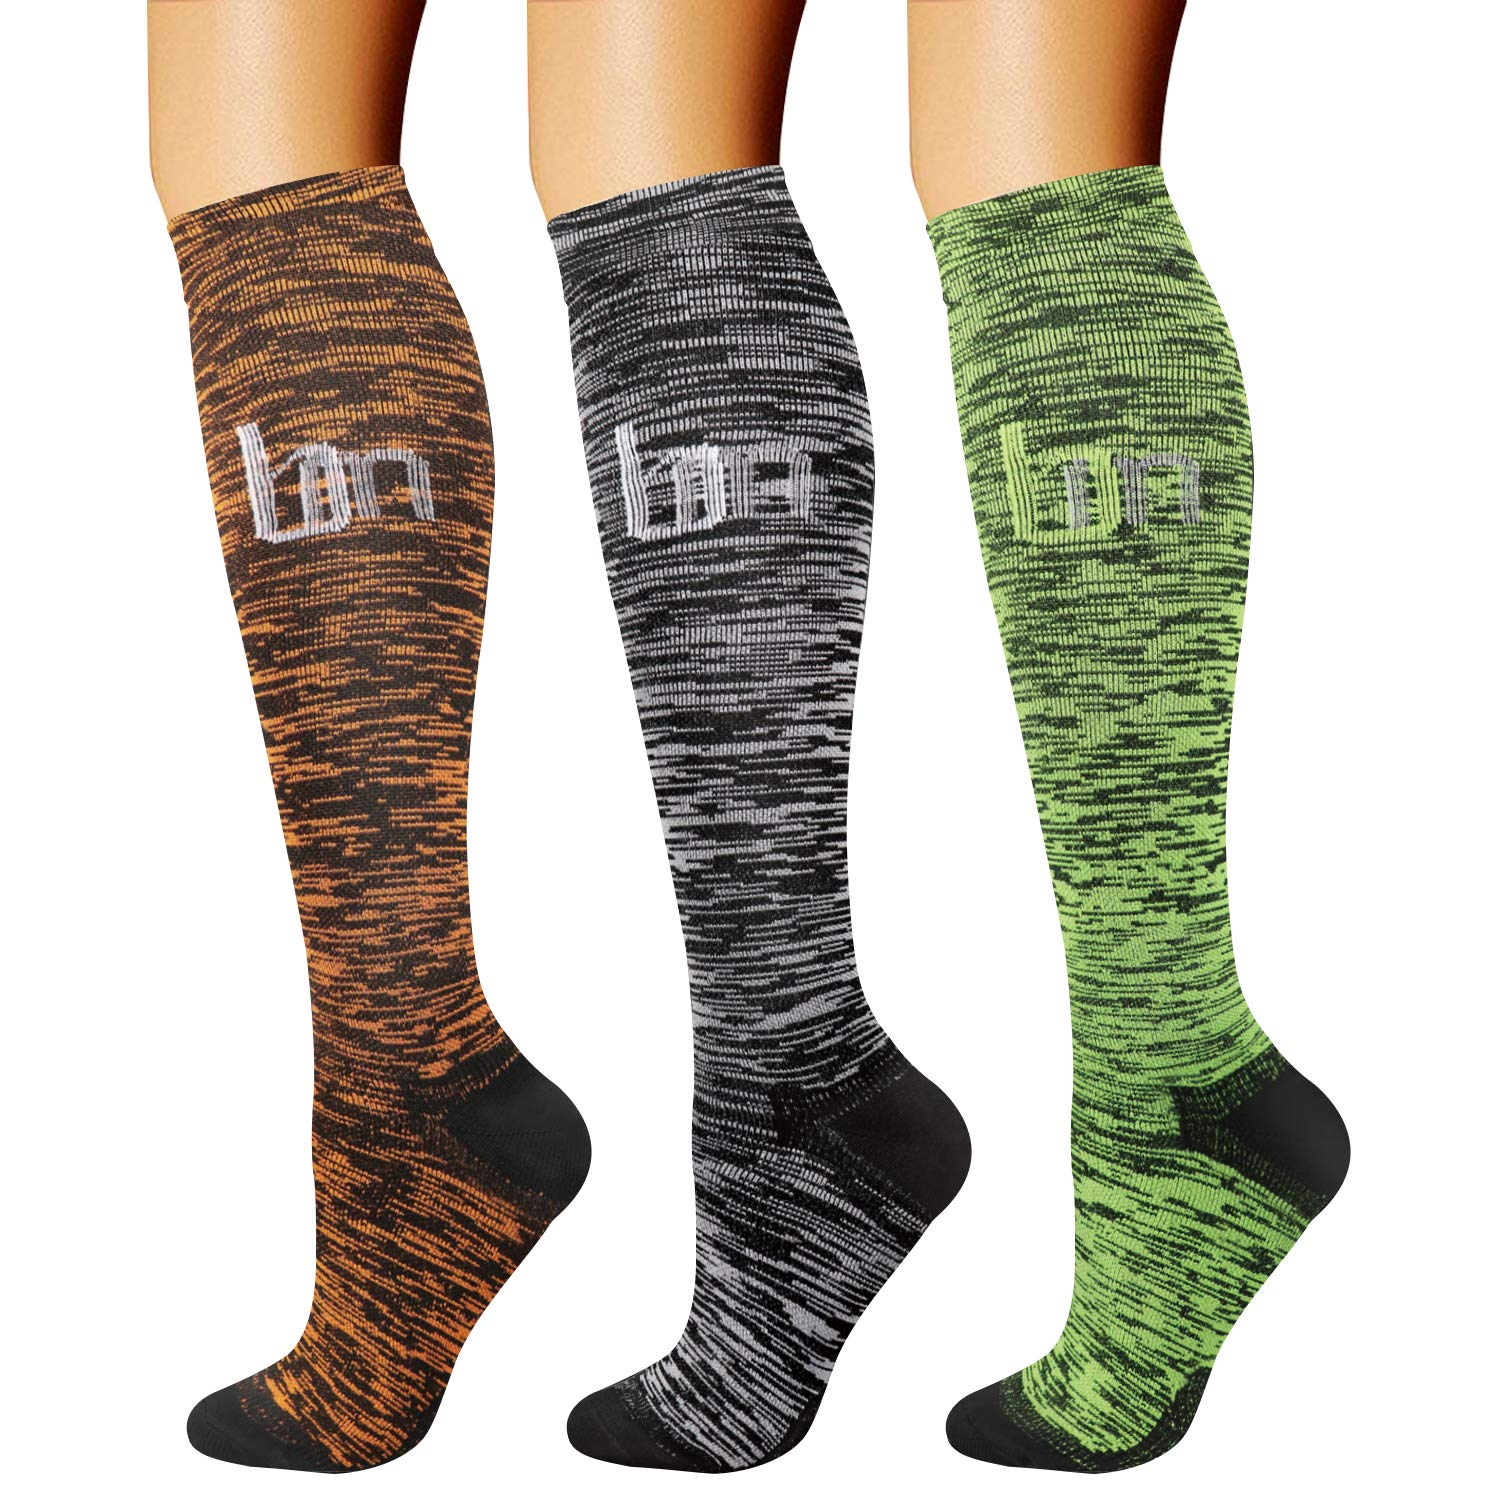 CHARMKING Compression Socks (3 Pairs) 15-20 mmHg is Best Athletic & Medical for Men & Women, Running, Flight, Travel, Nurses, Edema - Boost Performance, Blood Circulation & Recovery (L/XL,Assorted 27) by CHARMKING